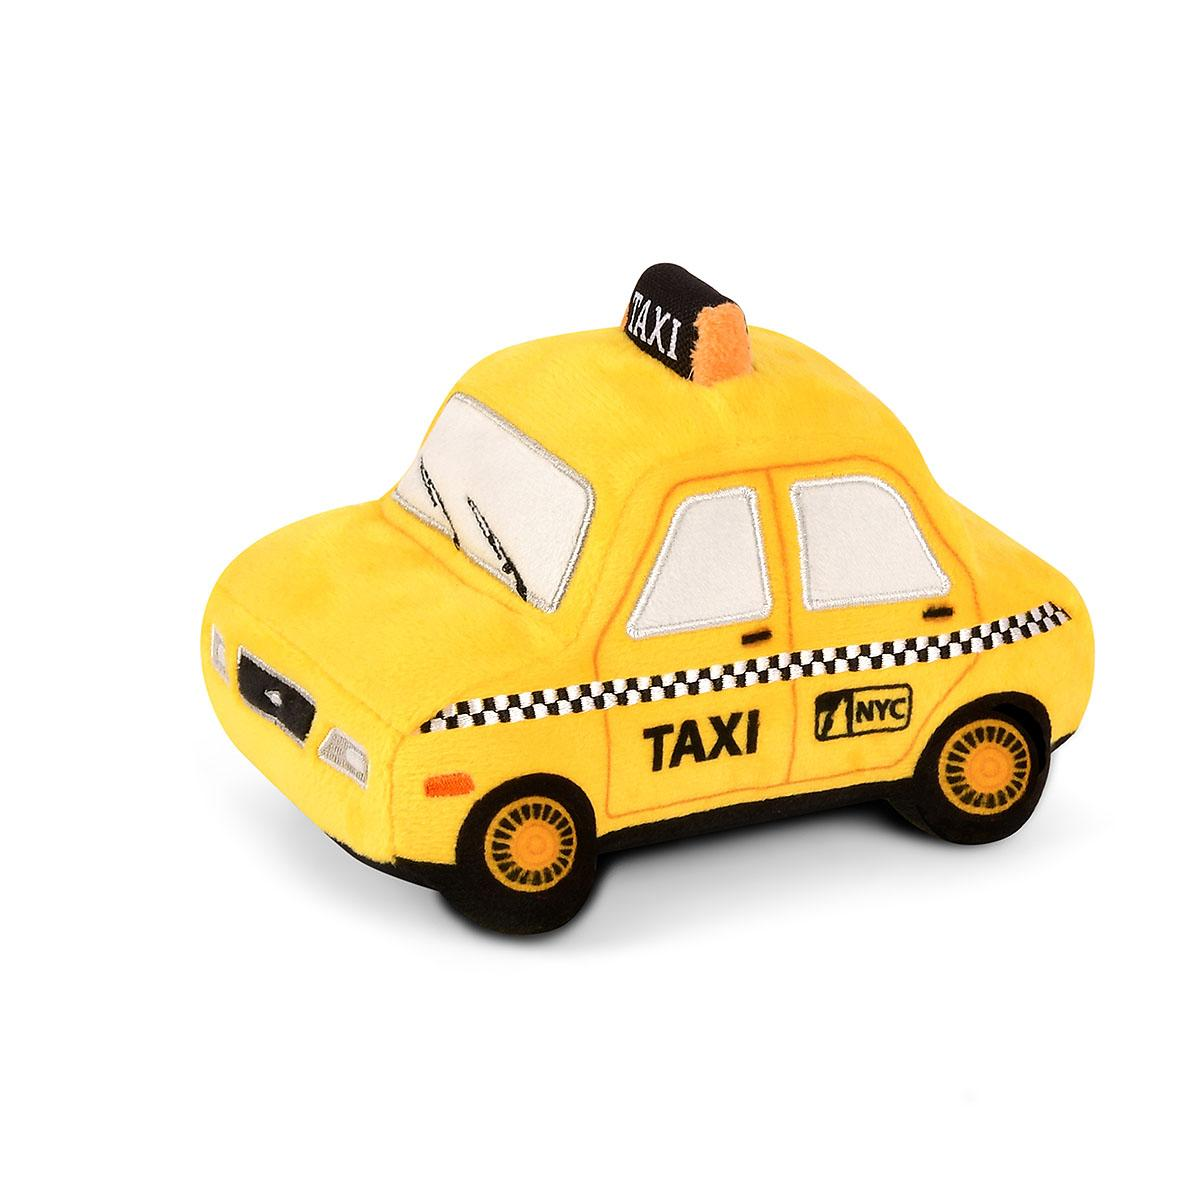 P.L.A.Y. Canine Commute Dog Toy - New Yap City Taxi